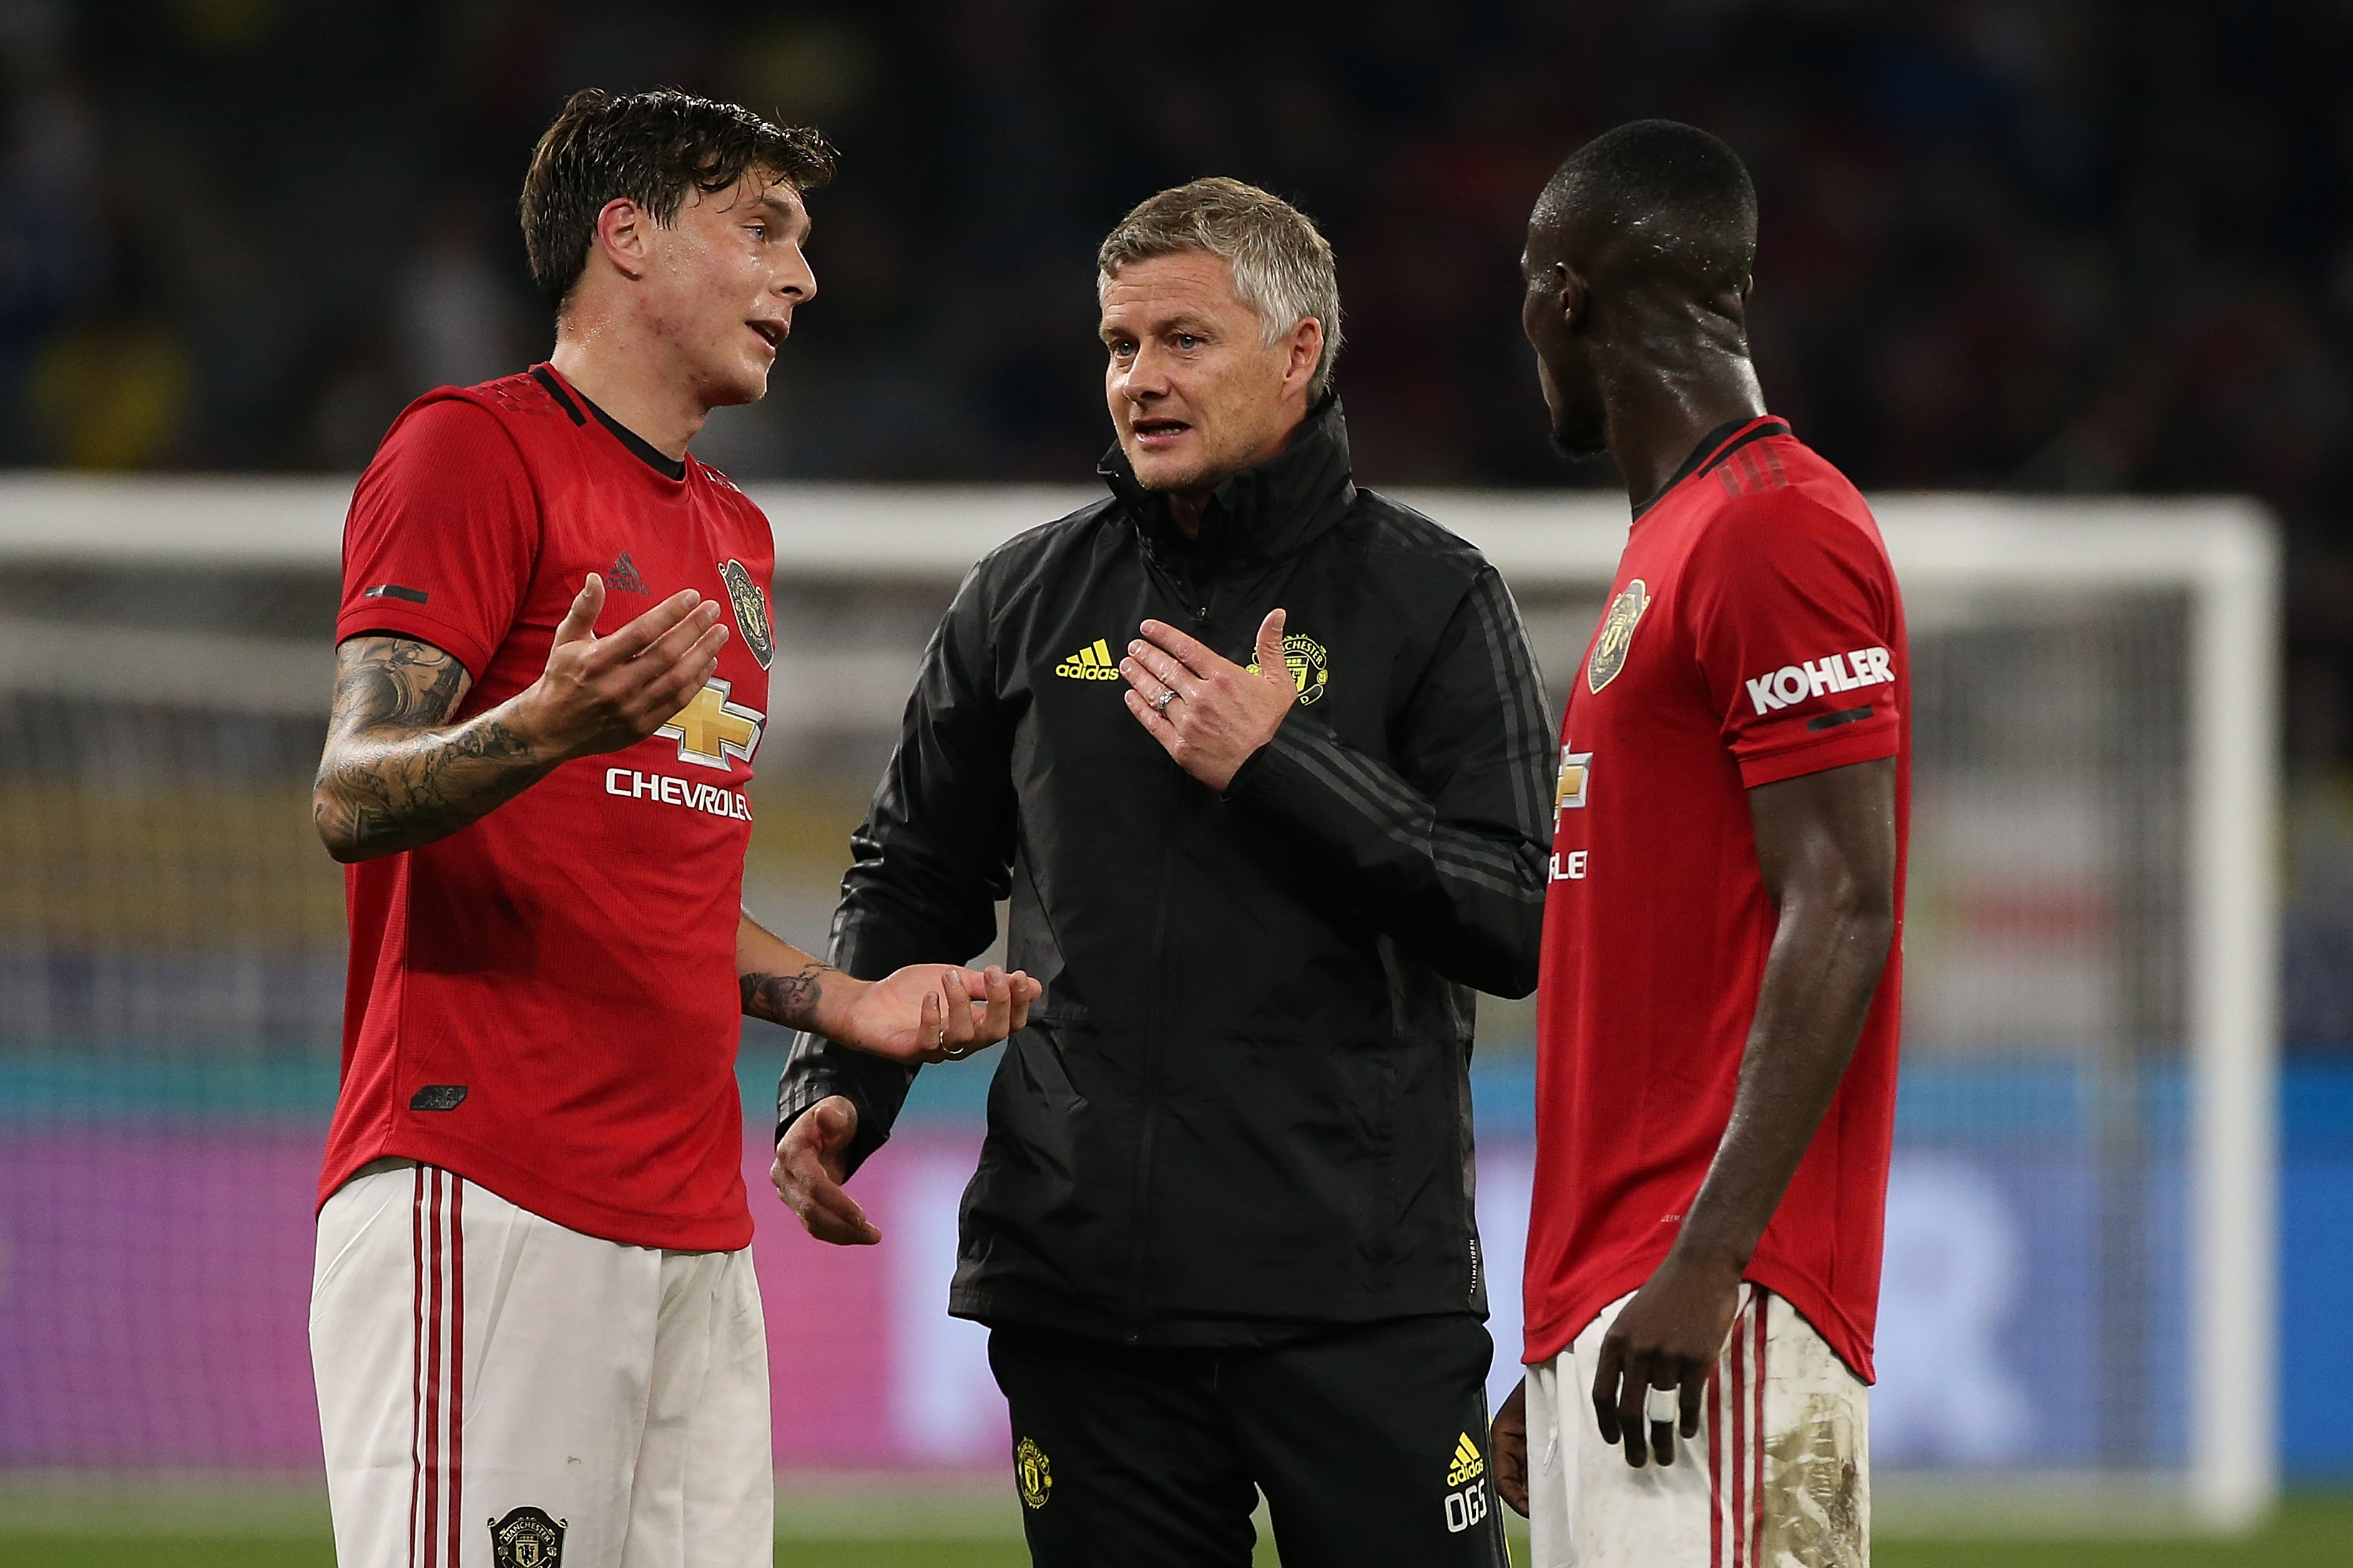 Eric Bailly could start ahead of Victor Lindelof. (Photo by Paul Kane/Getty Images)